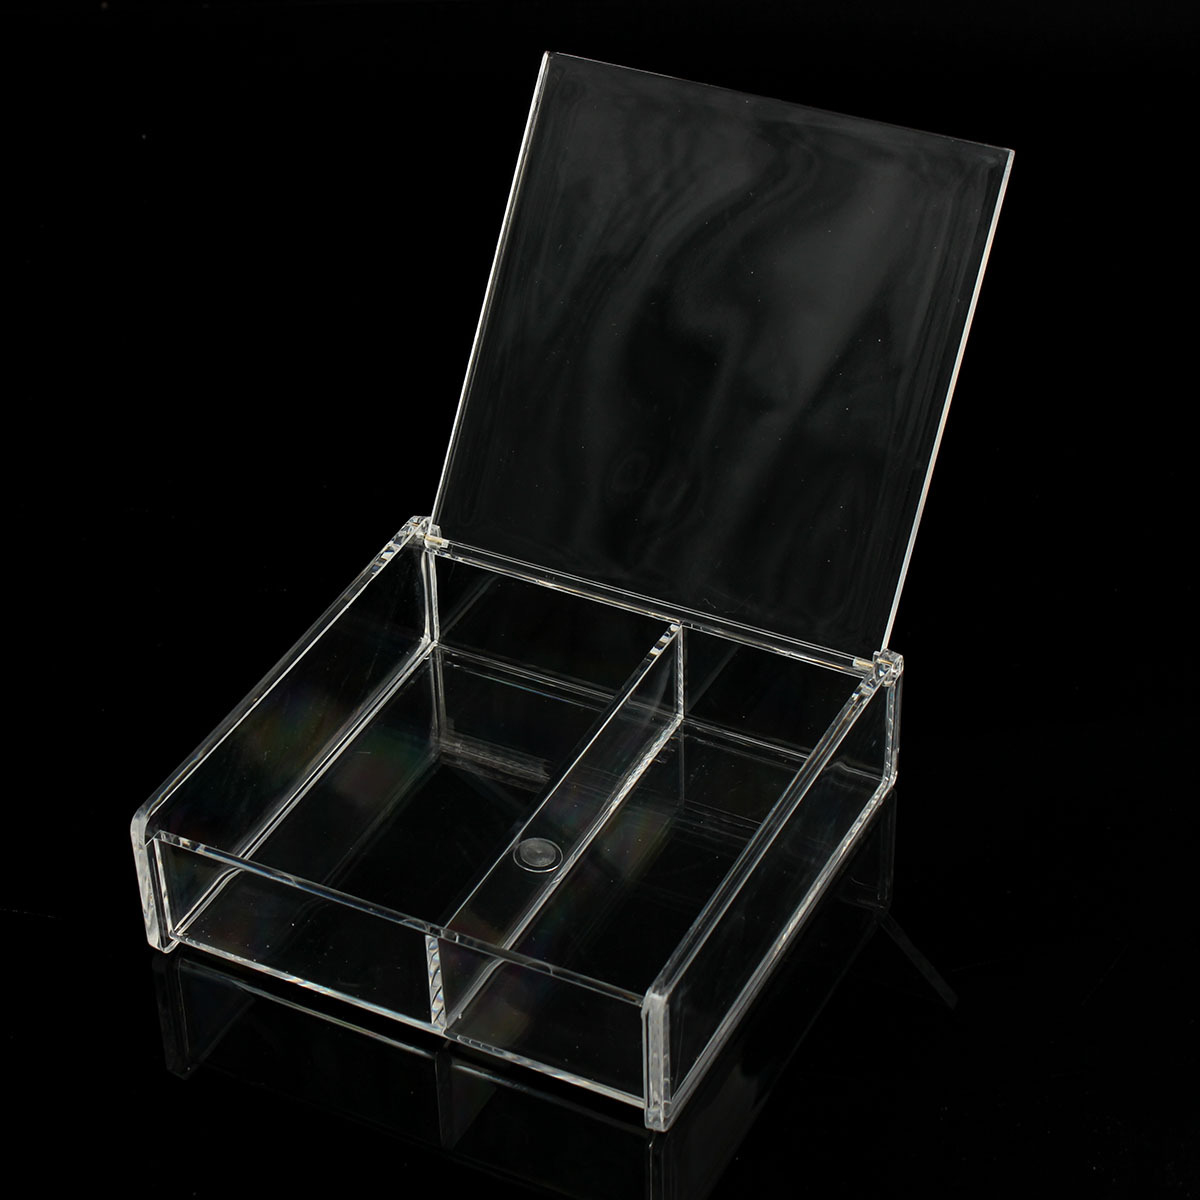 kosmetik organizer make up acryl aufbewahrung beauty kosmetikbox schubladen box ebay. Black Bedroom Furniture Sets. Home Design Ideas